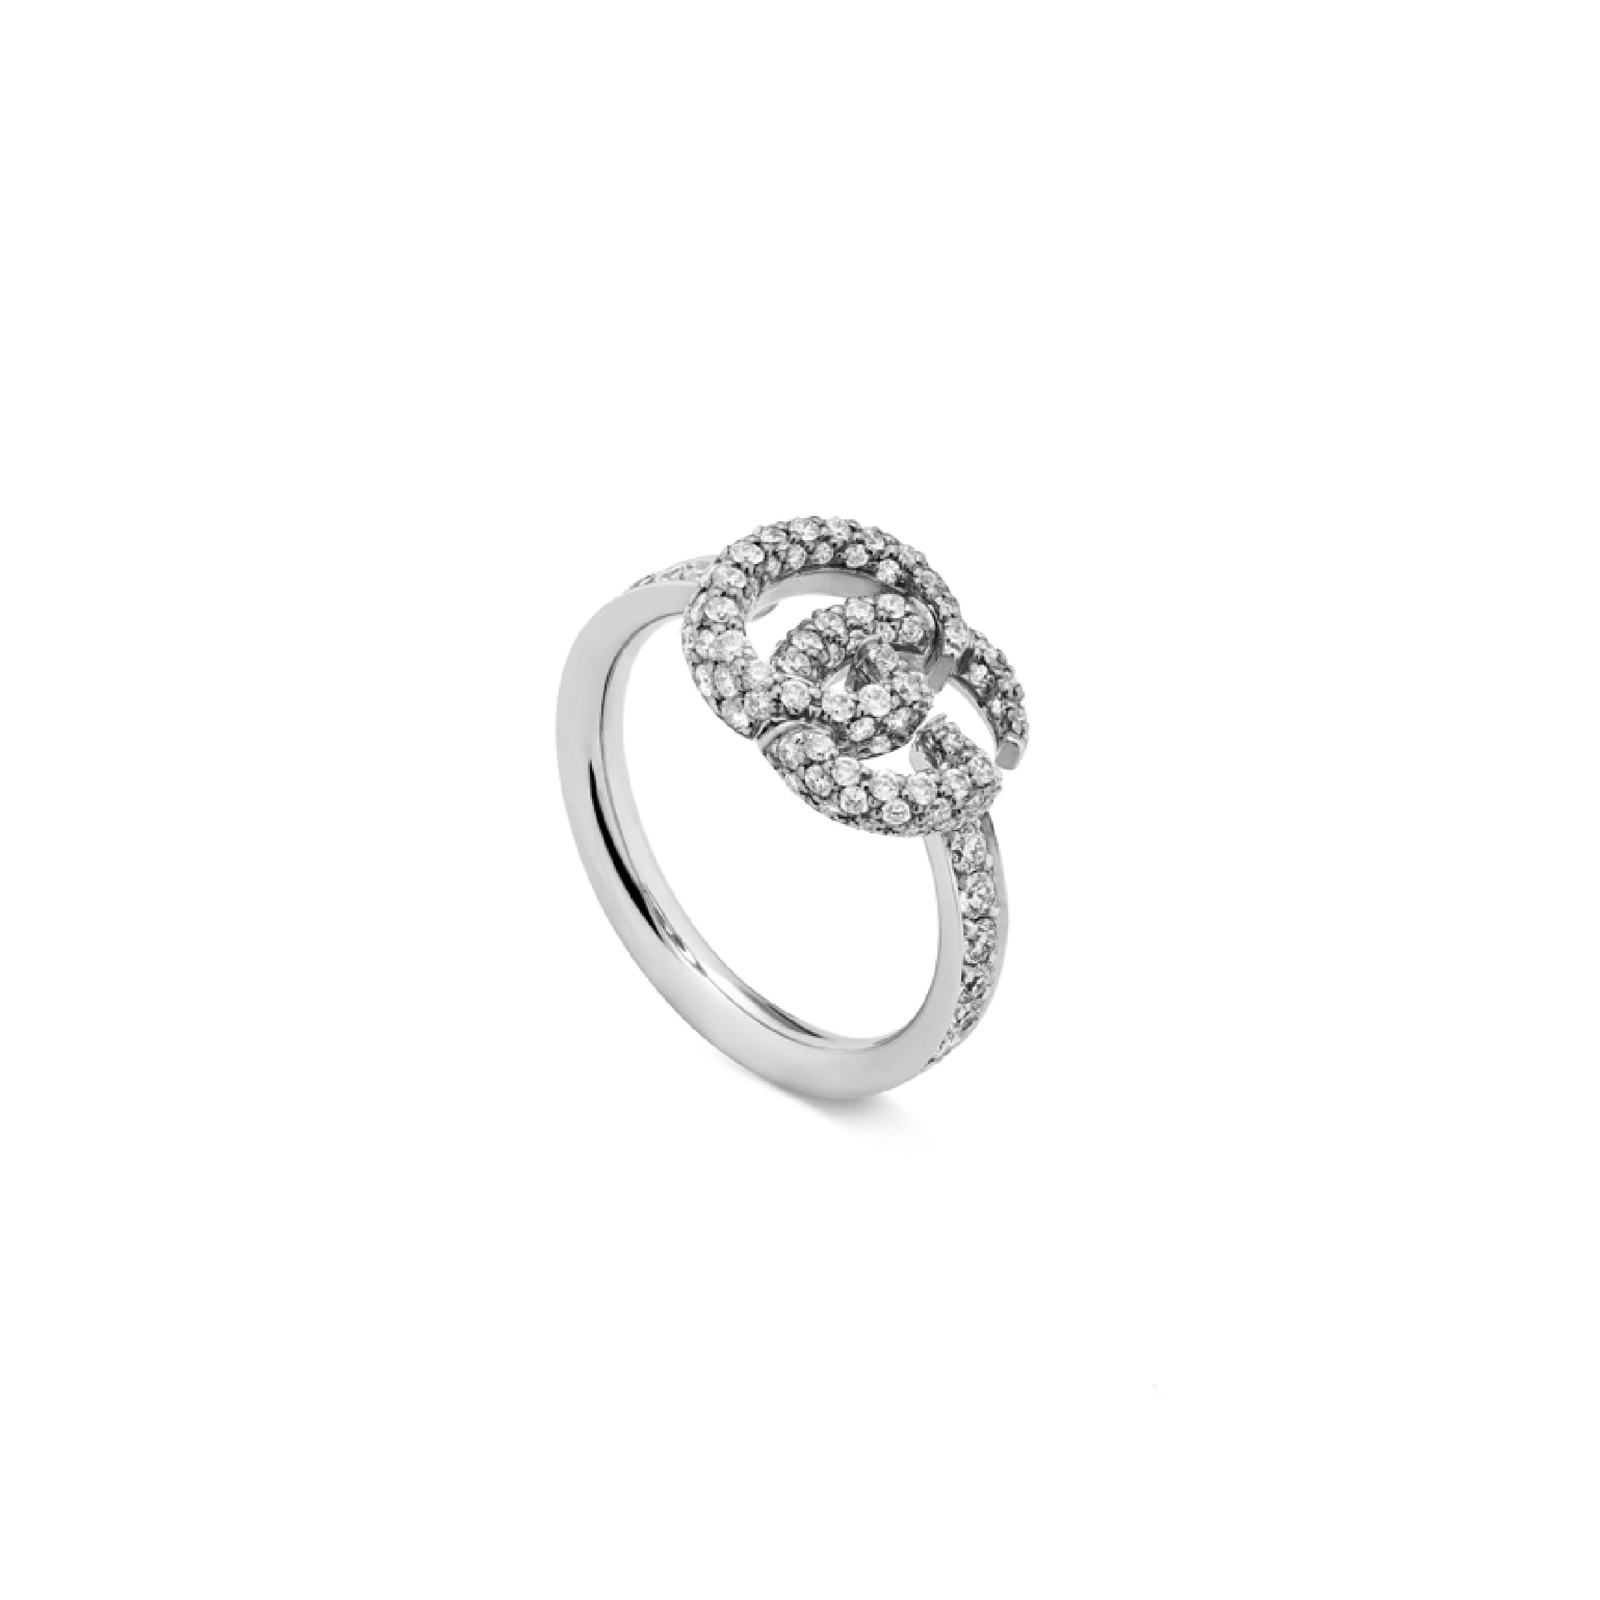 Gucci GG Running White Gold Diamond Ring - Ring Size P